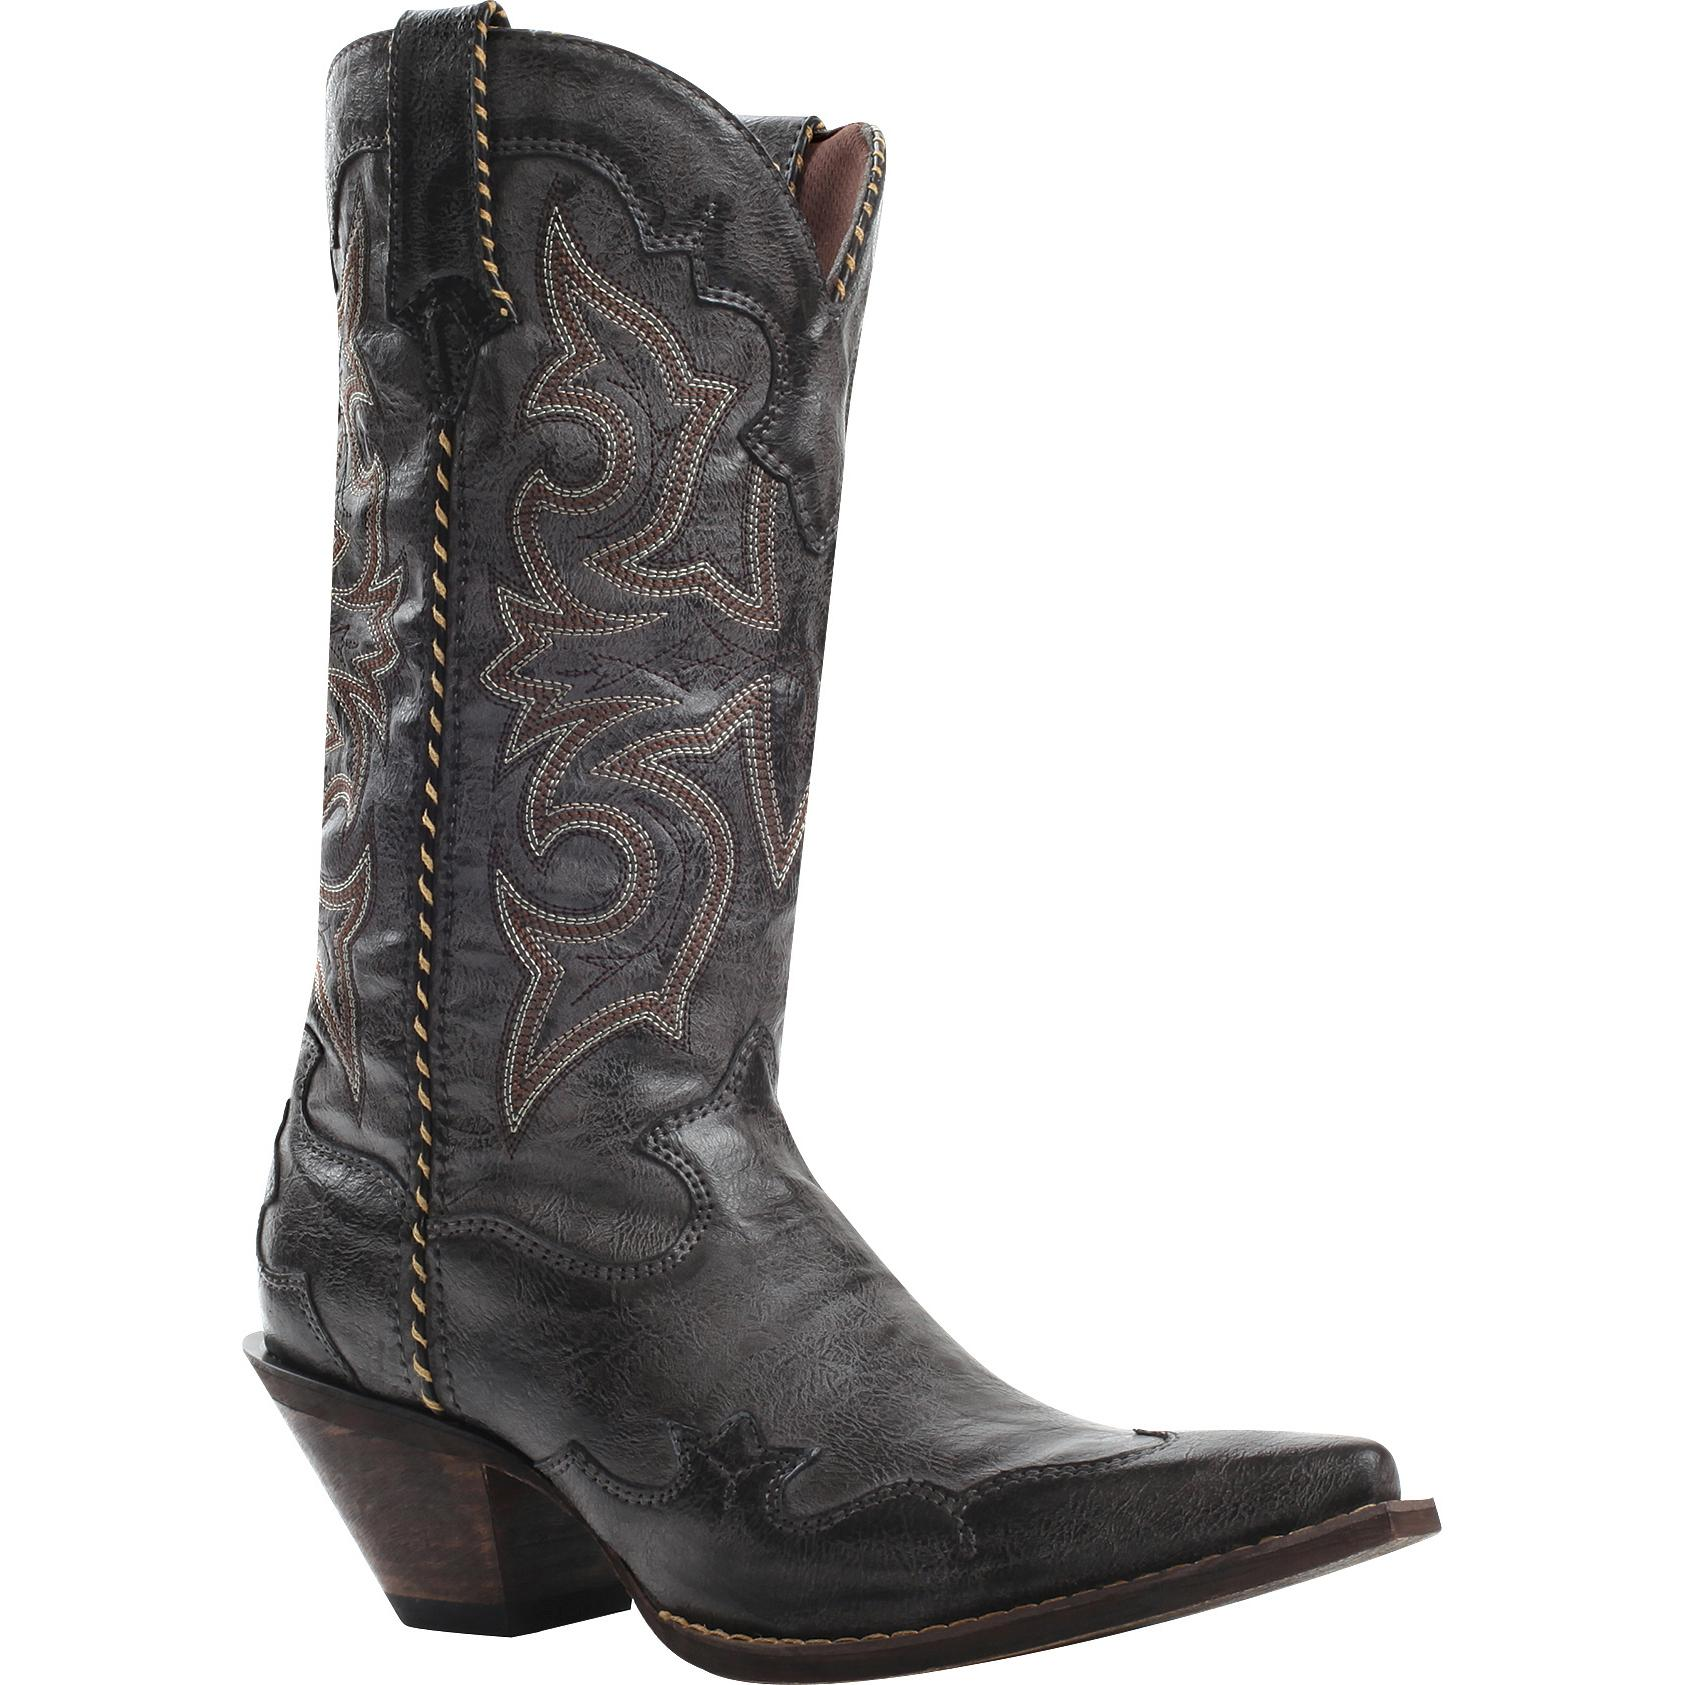 Crush by Durango Women's Rock 'n' Scroll Black Western Boot